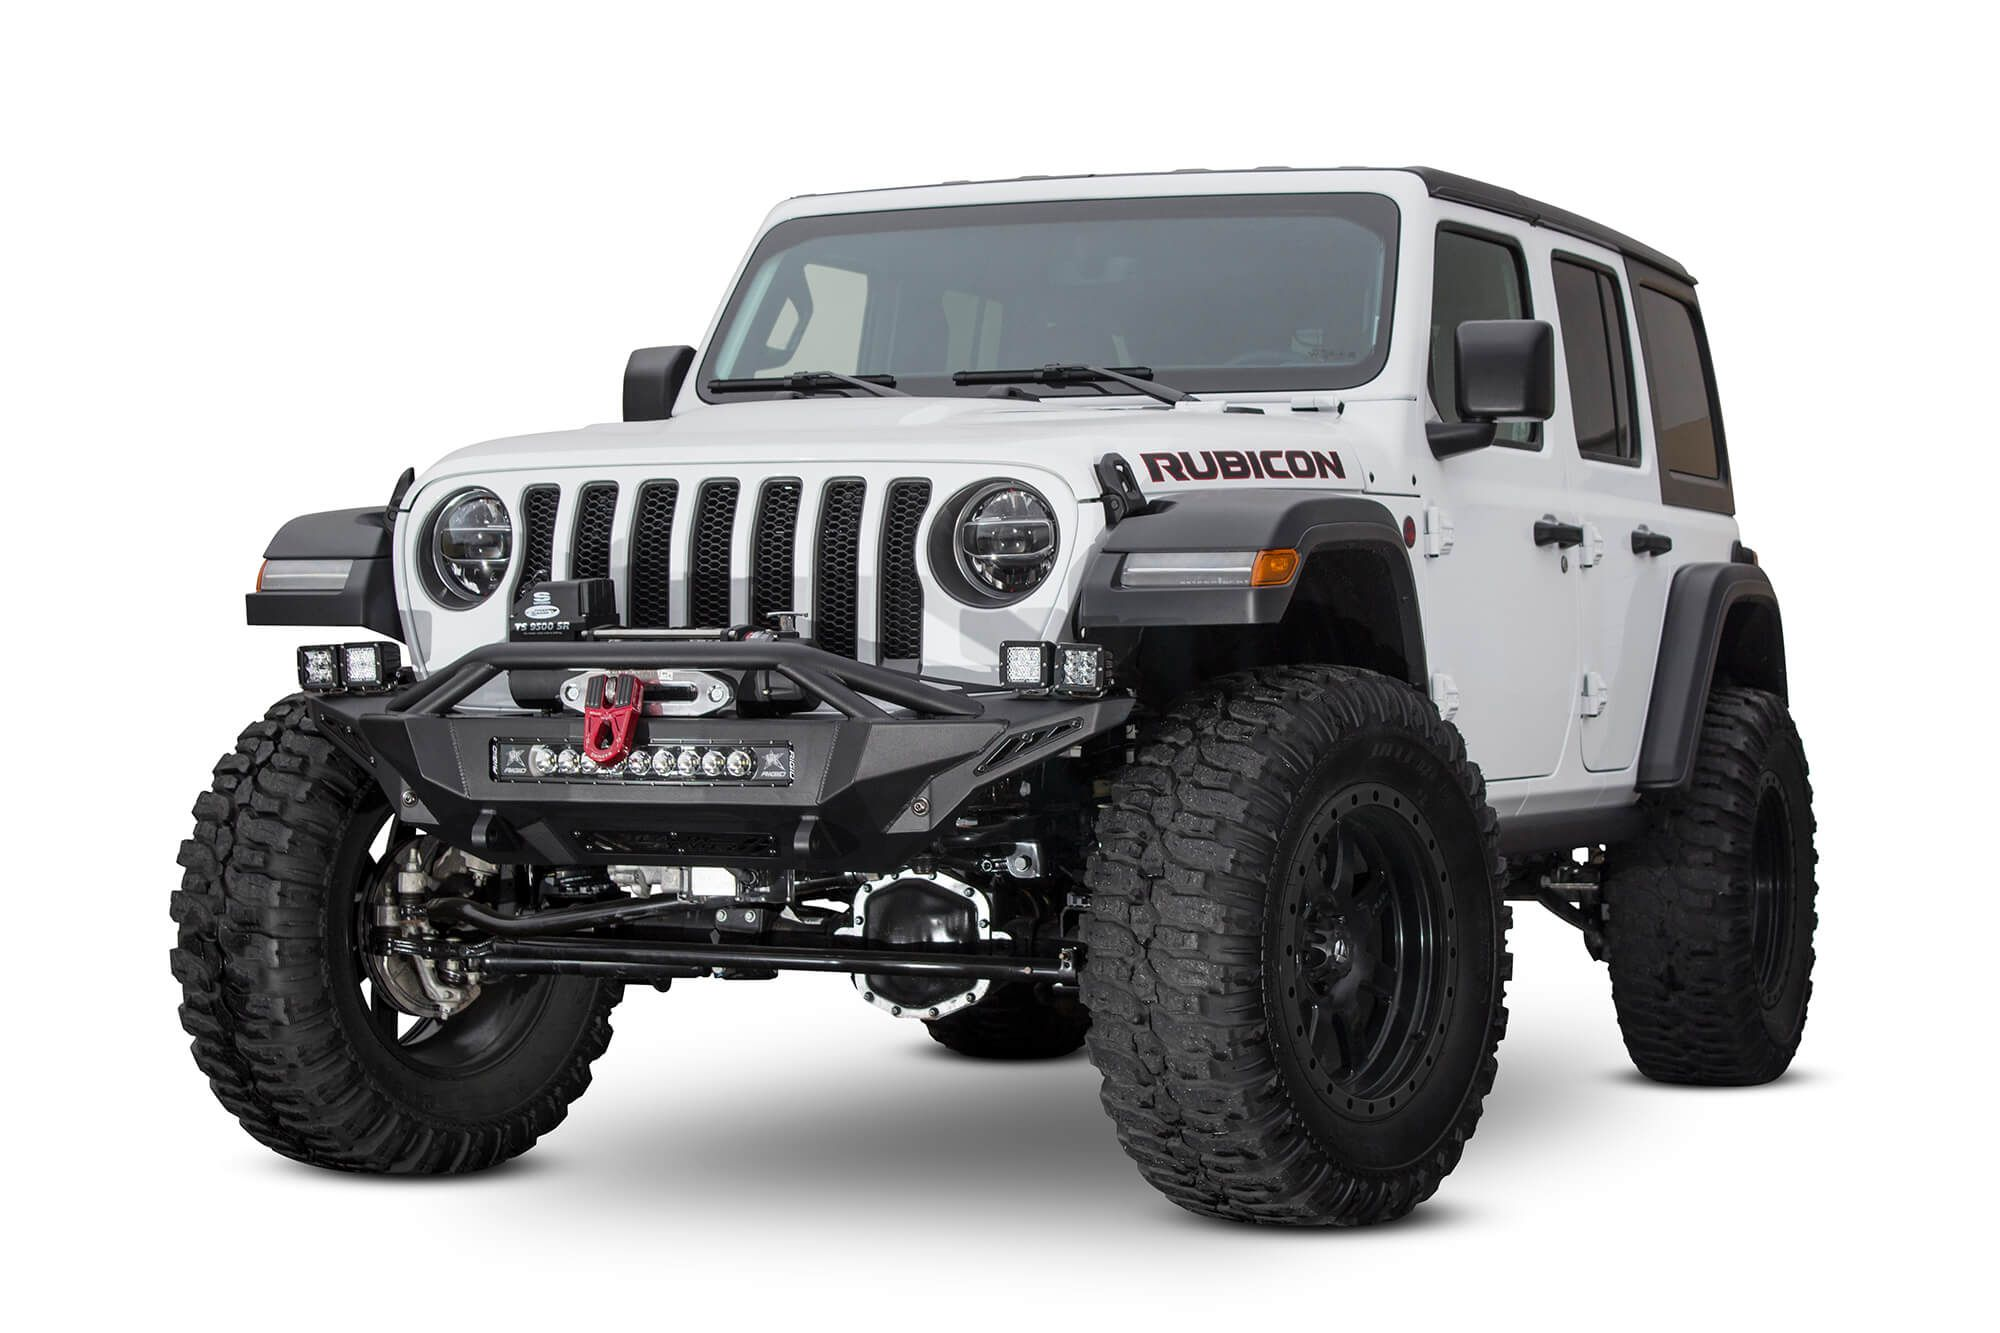 2018 2020 Jeep Wrangler Jl Winch Front Bumpers Shop Now Jeep Wrangler Bumpers Jeep Wrangler Wrangler Jl